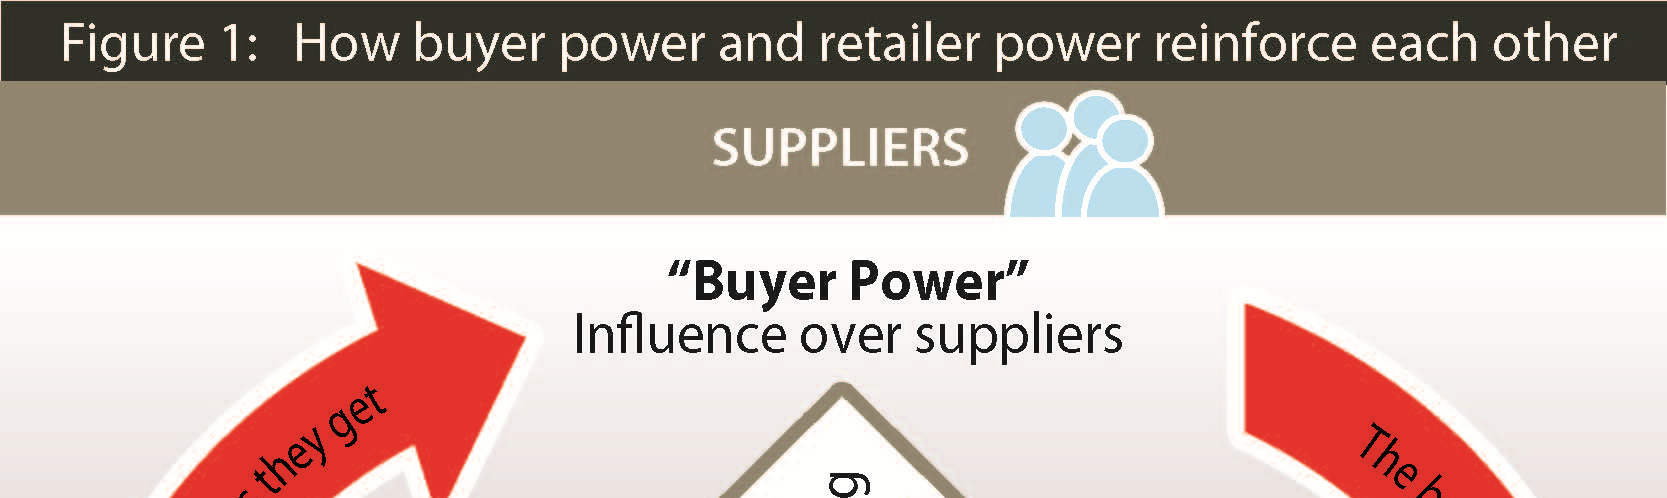 Supermarkets buyer power arises from their retailer power: often commanding upwards of 60 per cent of domestic grocery sales, 1 supermarkets collectively are of an importance to suppliers which